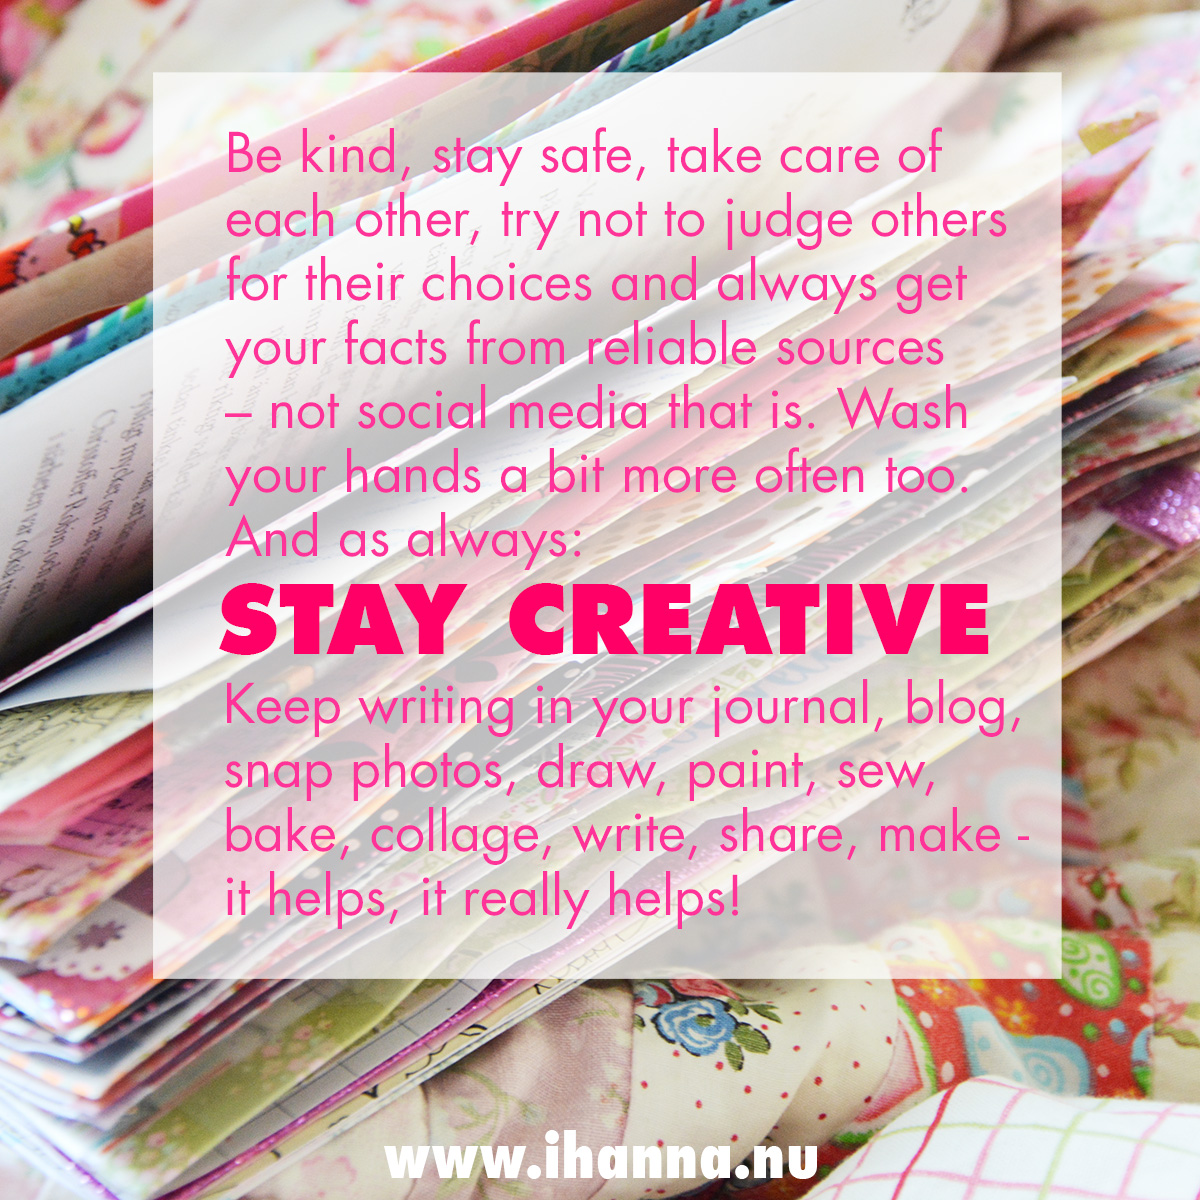 iHannas best advice for how to stay creative now on the blog (Be kind, stay safe, take care of each other, try not to judge others for their choices and get your facts from reliable sources - not social media! Wash your hands a bit more often. And as always I need to add : keep creating! Keep writing in your journal, painting, sewing, making and being creative. It helps, it really does.) #coronavirus #creativity #stayathome